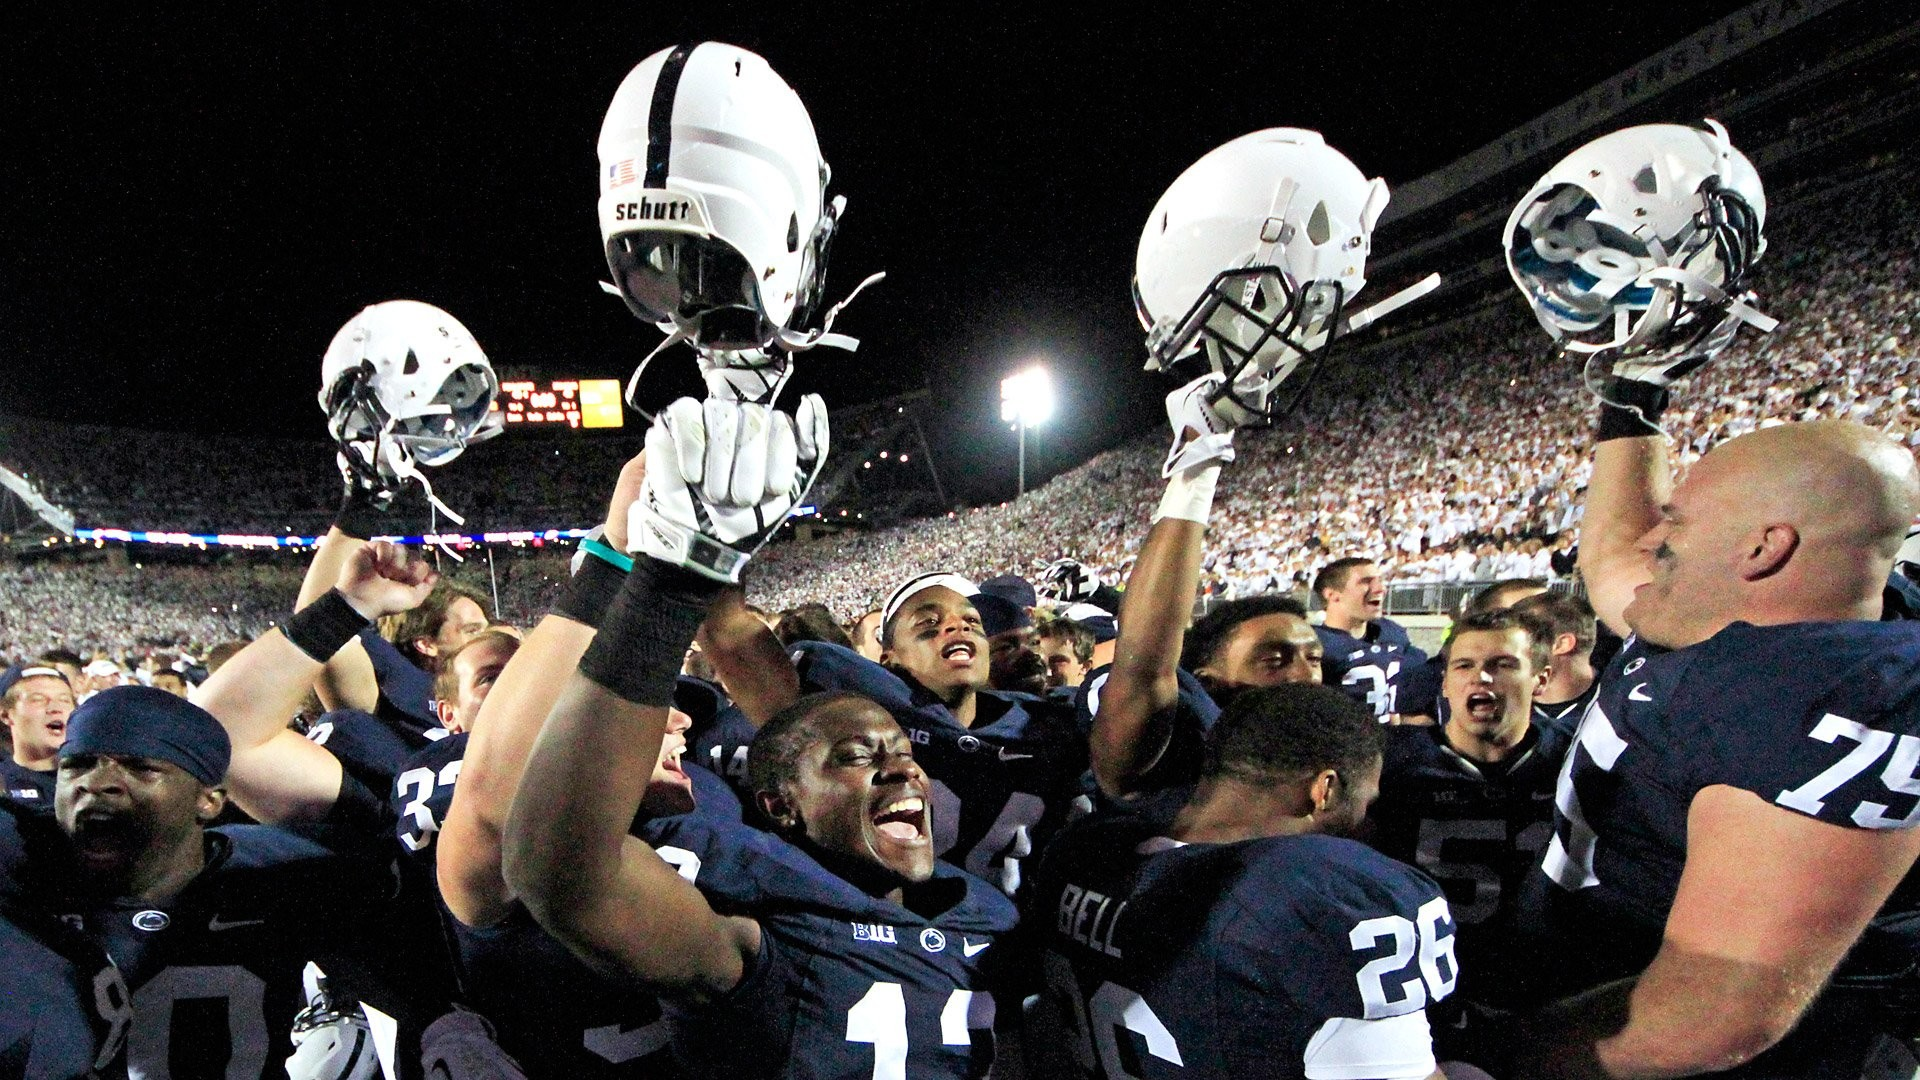 PENN STATE NITTANY LIONS college football wallpaper     595756    WallpaperUP